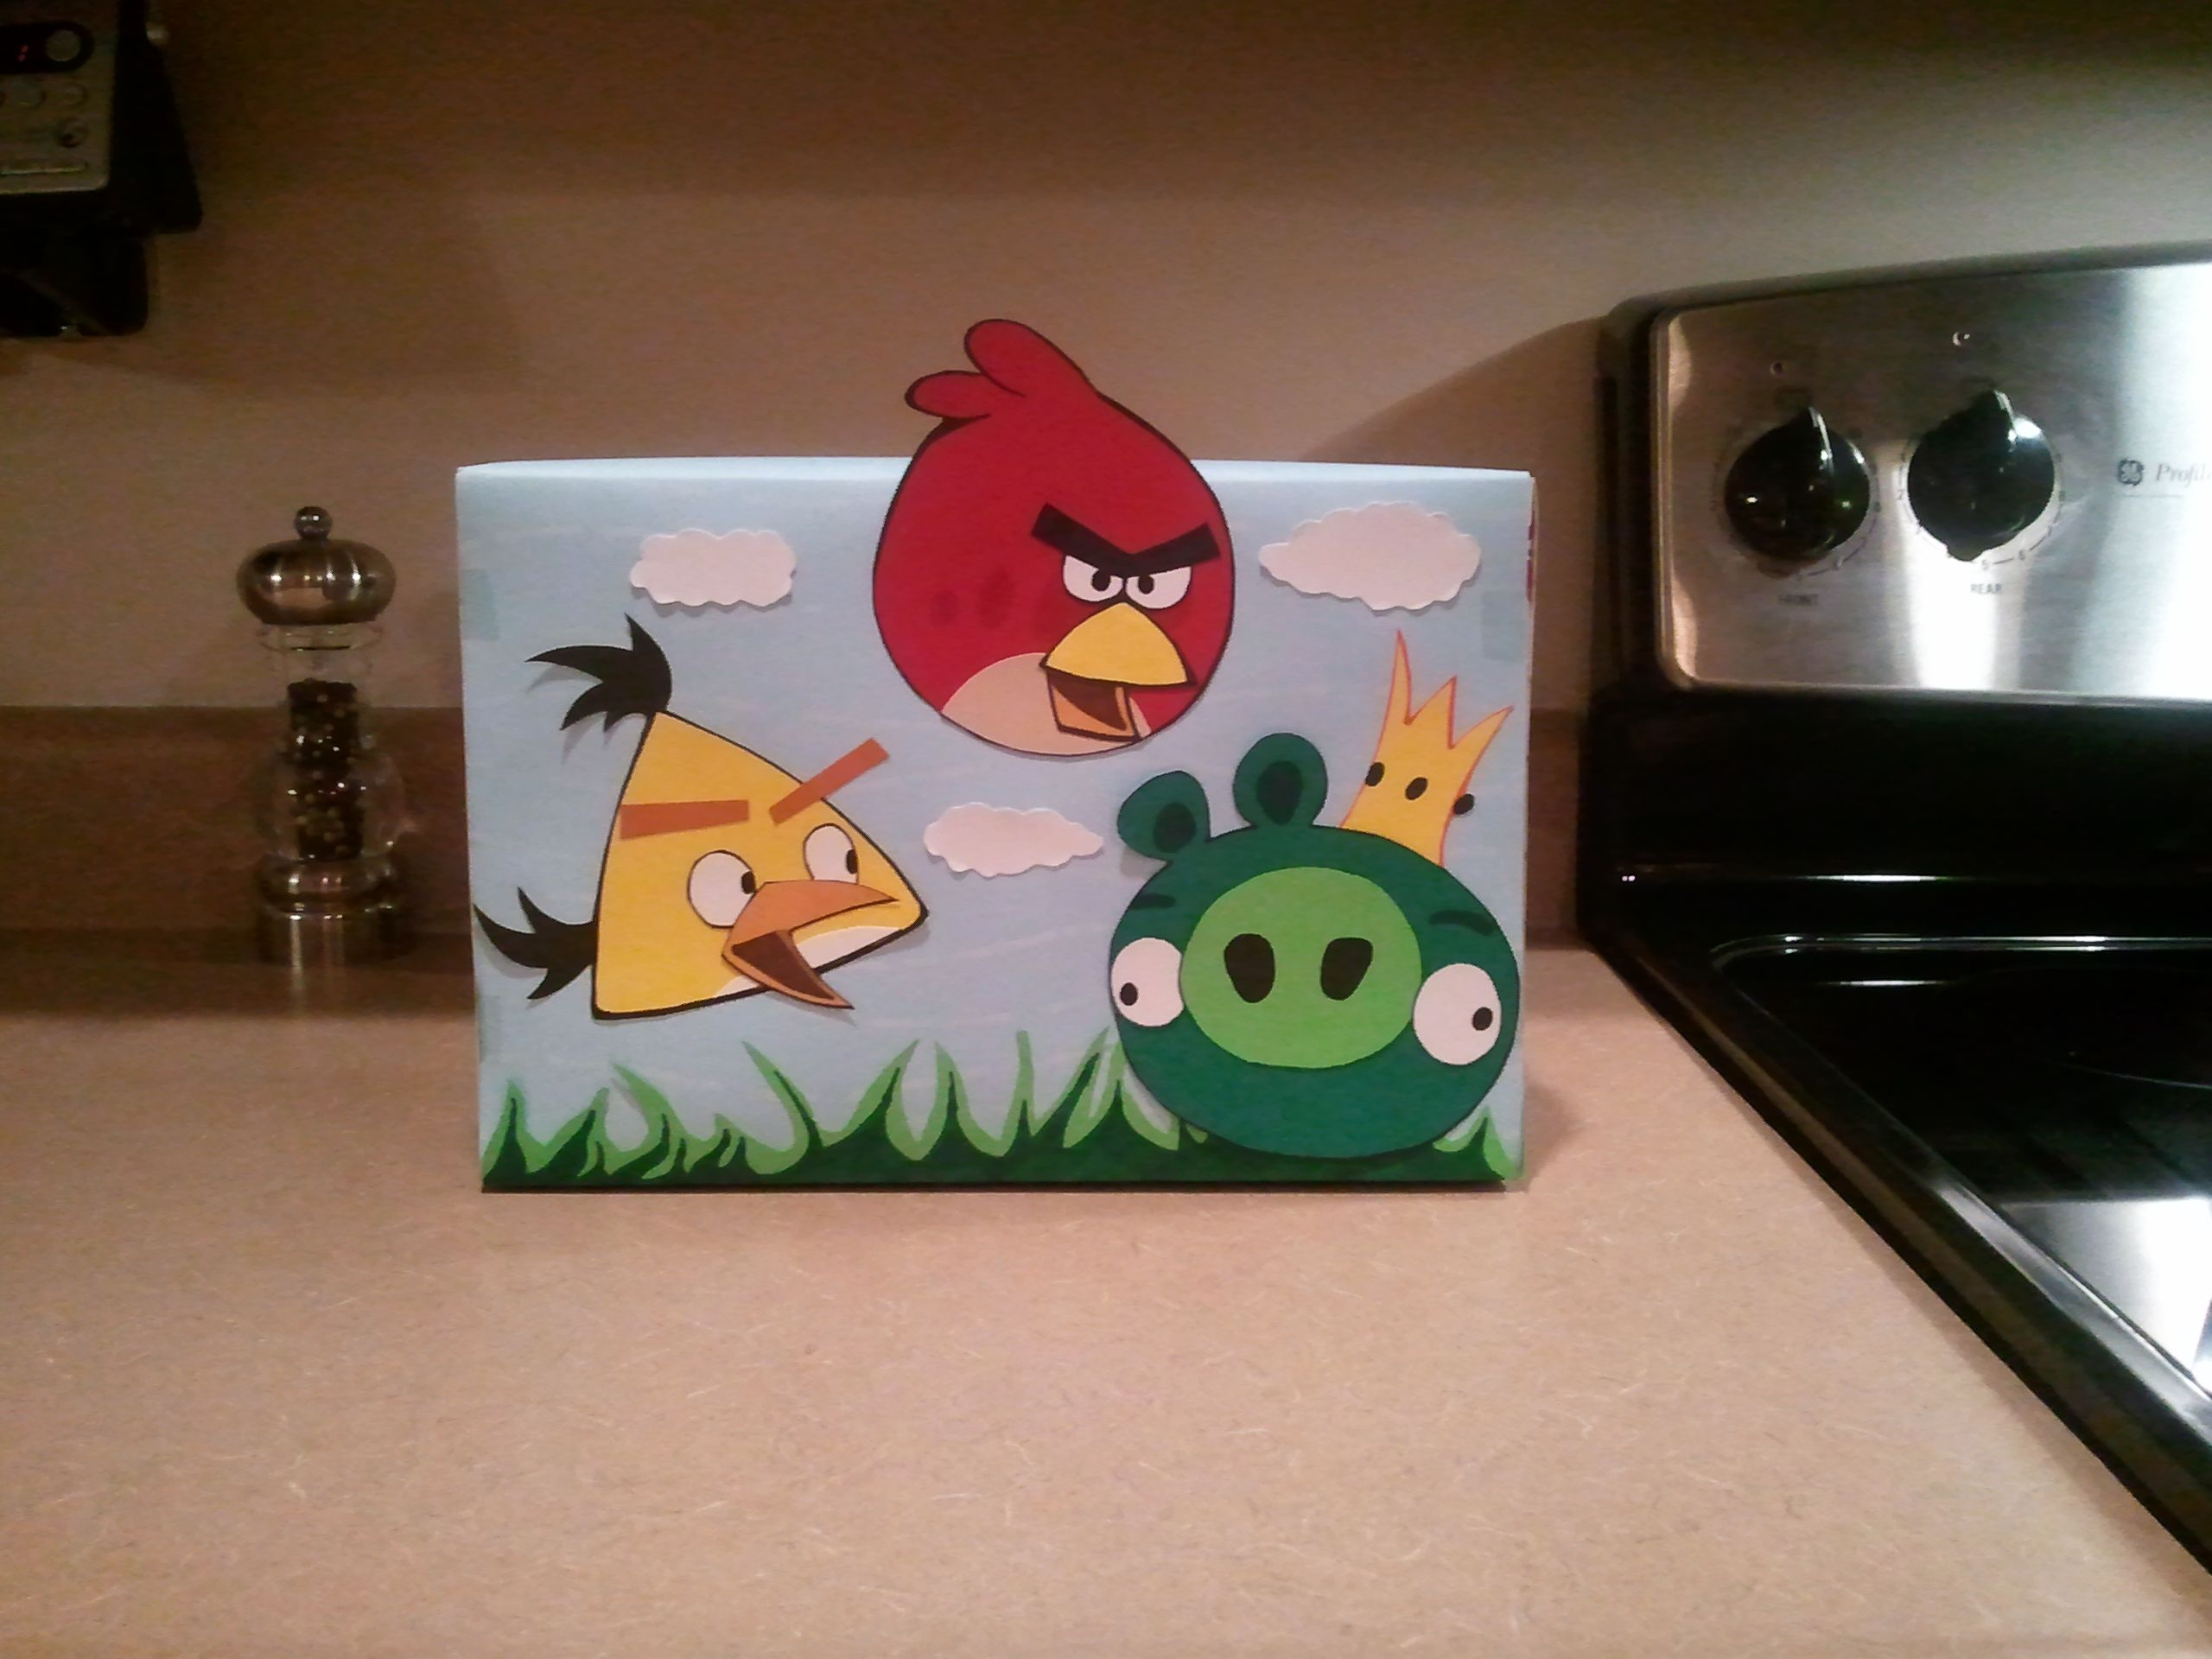 Valentines Box.  My son and I made this tonight.  This is all completely hand drawn and cut out and glued on a shoe box.  There is a slit in the top of the box for his classmates to put his Valentines in.